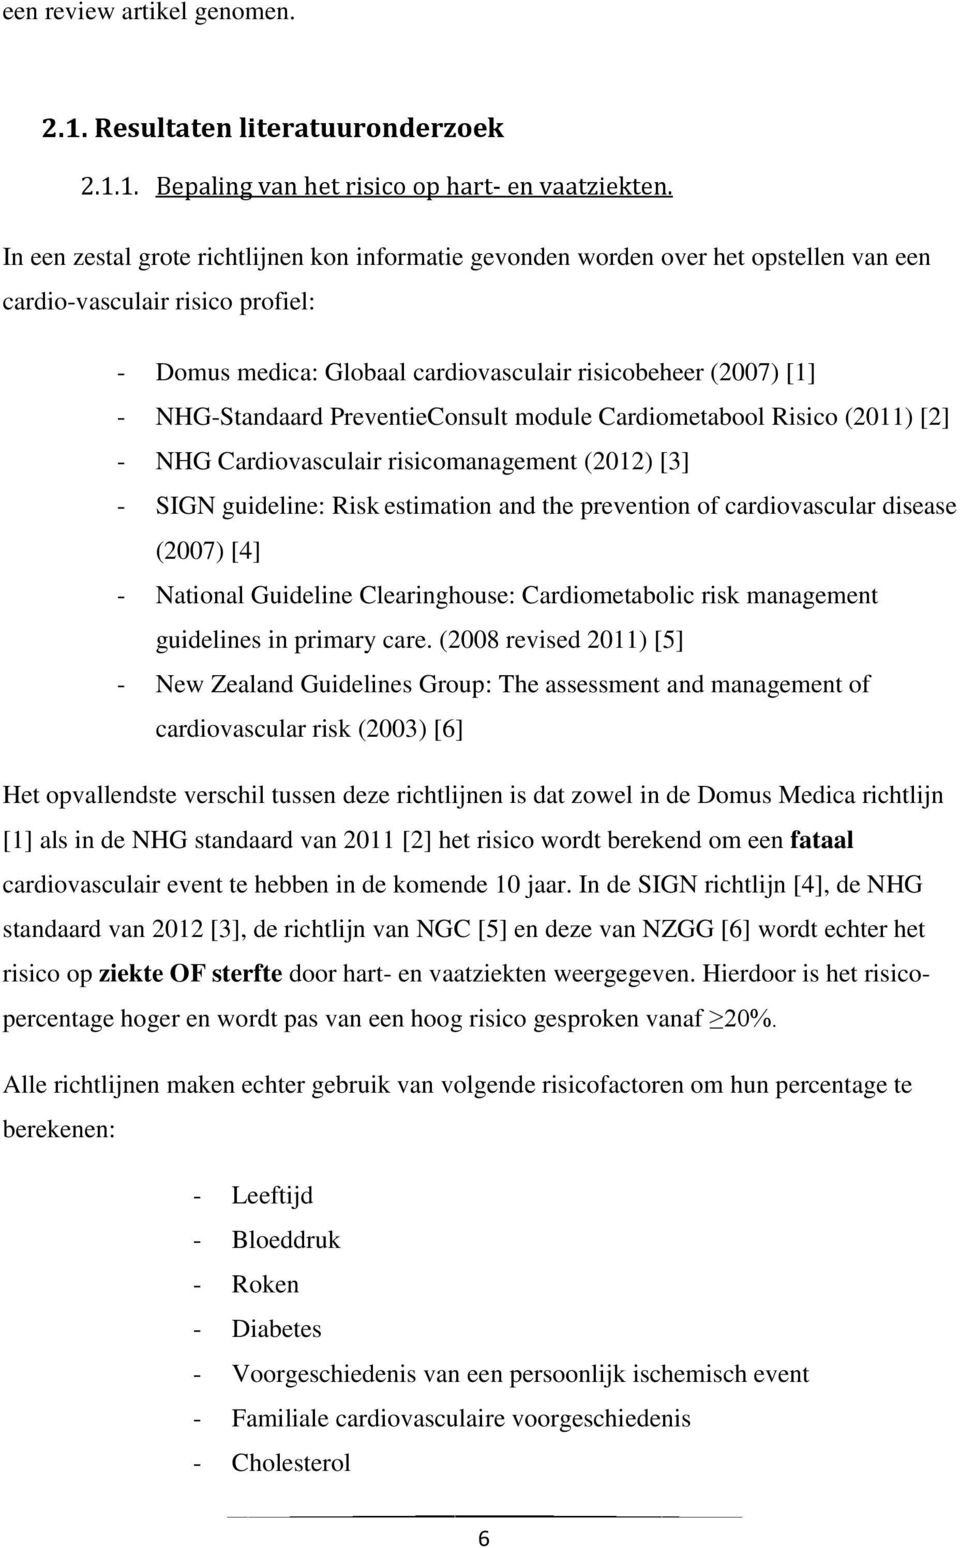 NHG-Standaard PreventieConsult module Cardiometabool Risico (2011) [2] - NHG Cardiovasculair risicomanagement (2012) [3] - SIGN guideline: Risk estimation and the prevention of cardiovascular disease